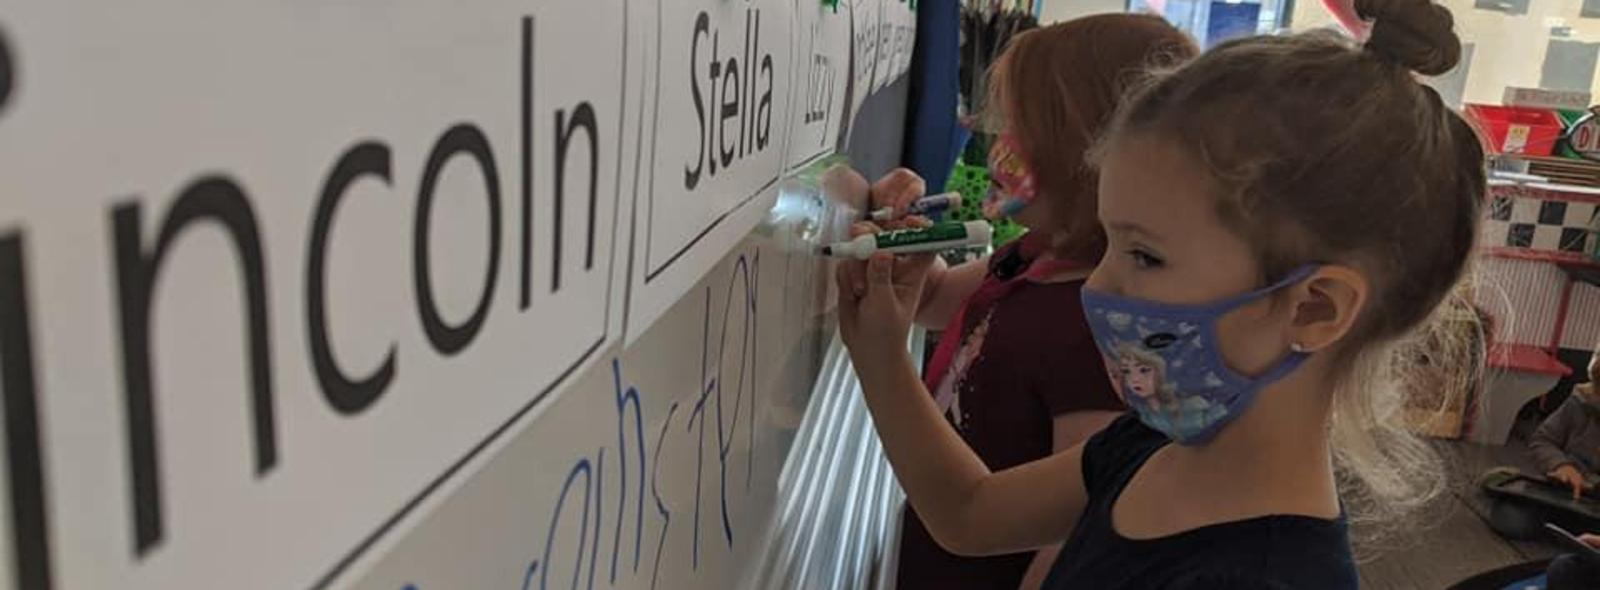 students write names on board